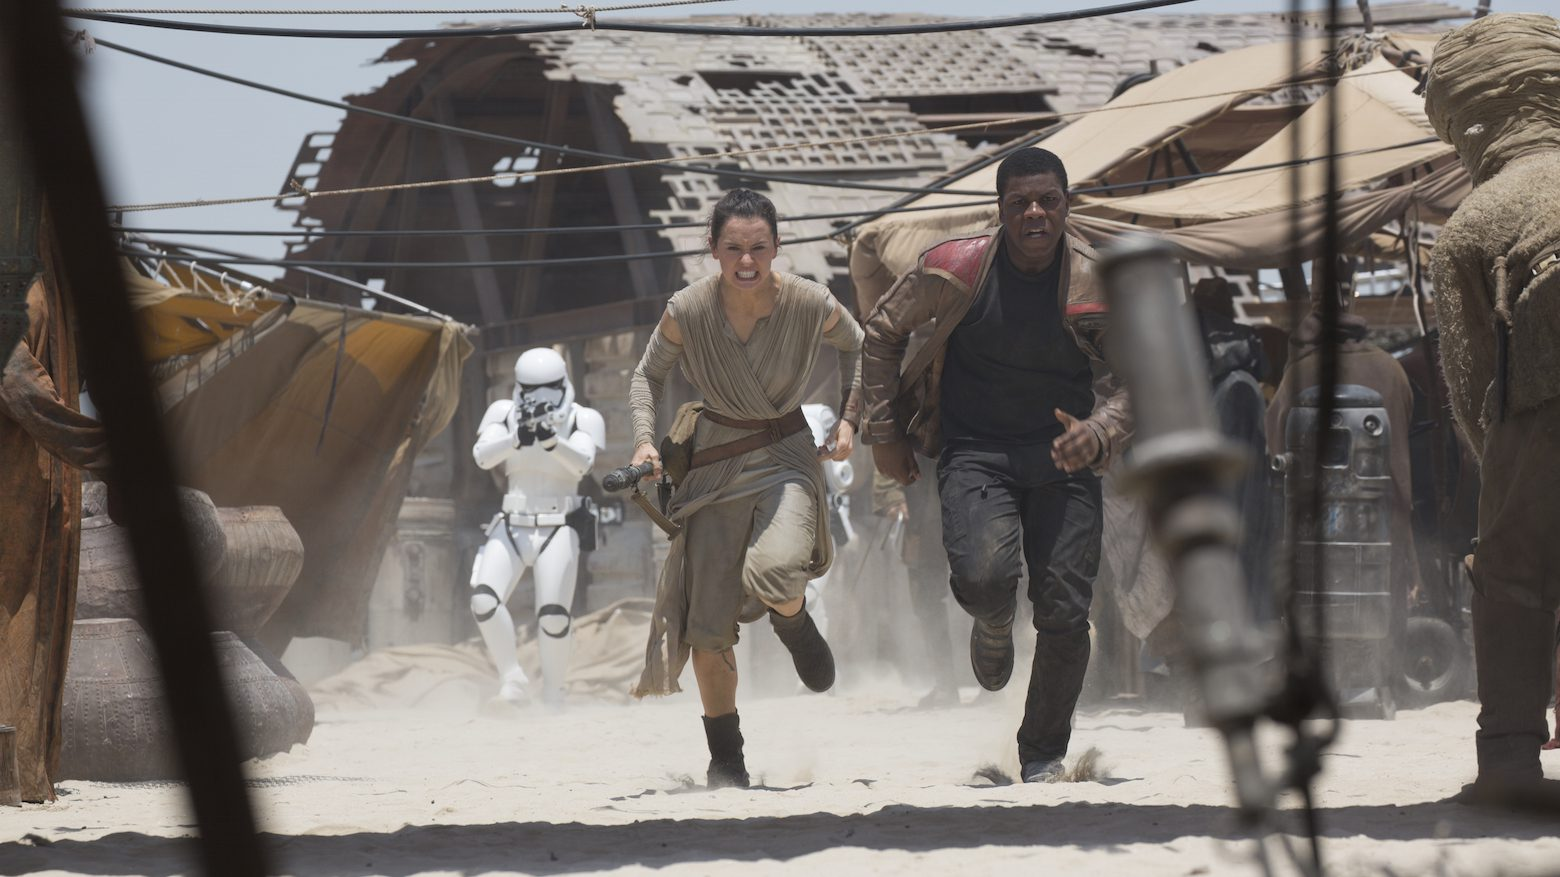 Rey and Finn from Star Wars run from a Stormtrooper